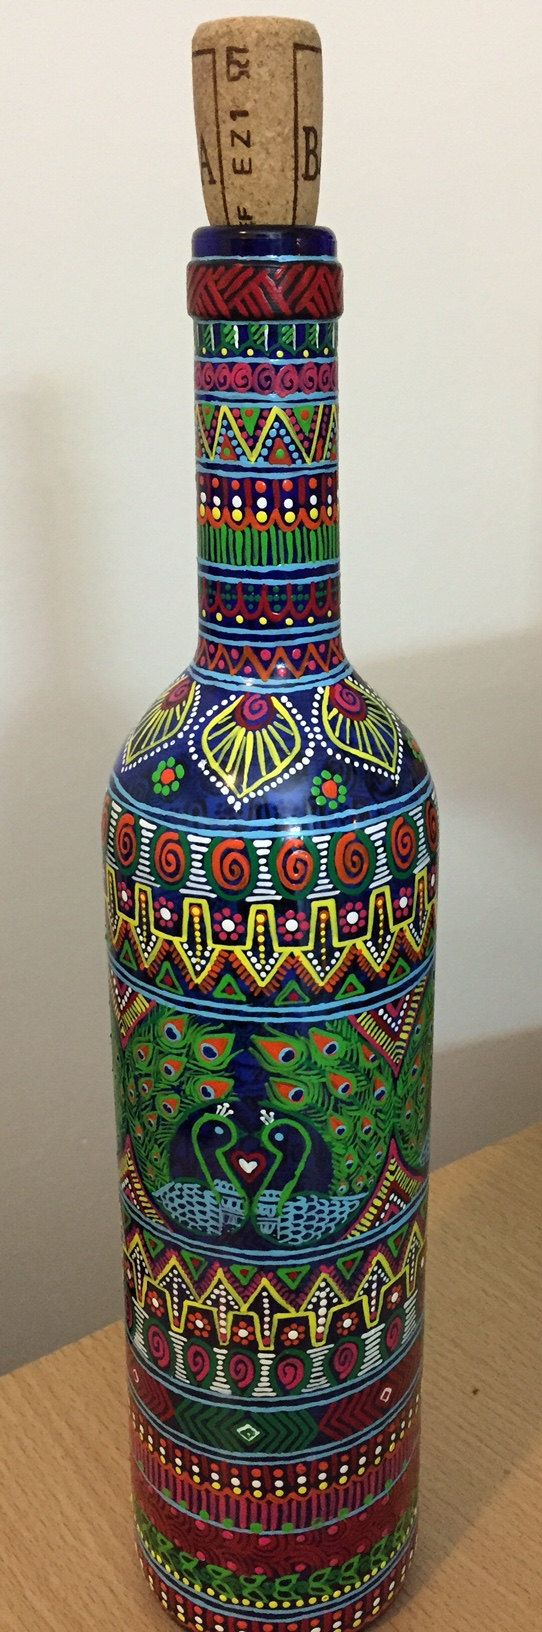 Peacock painting on Bottle, $75